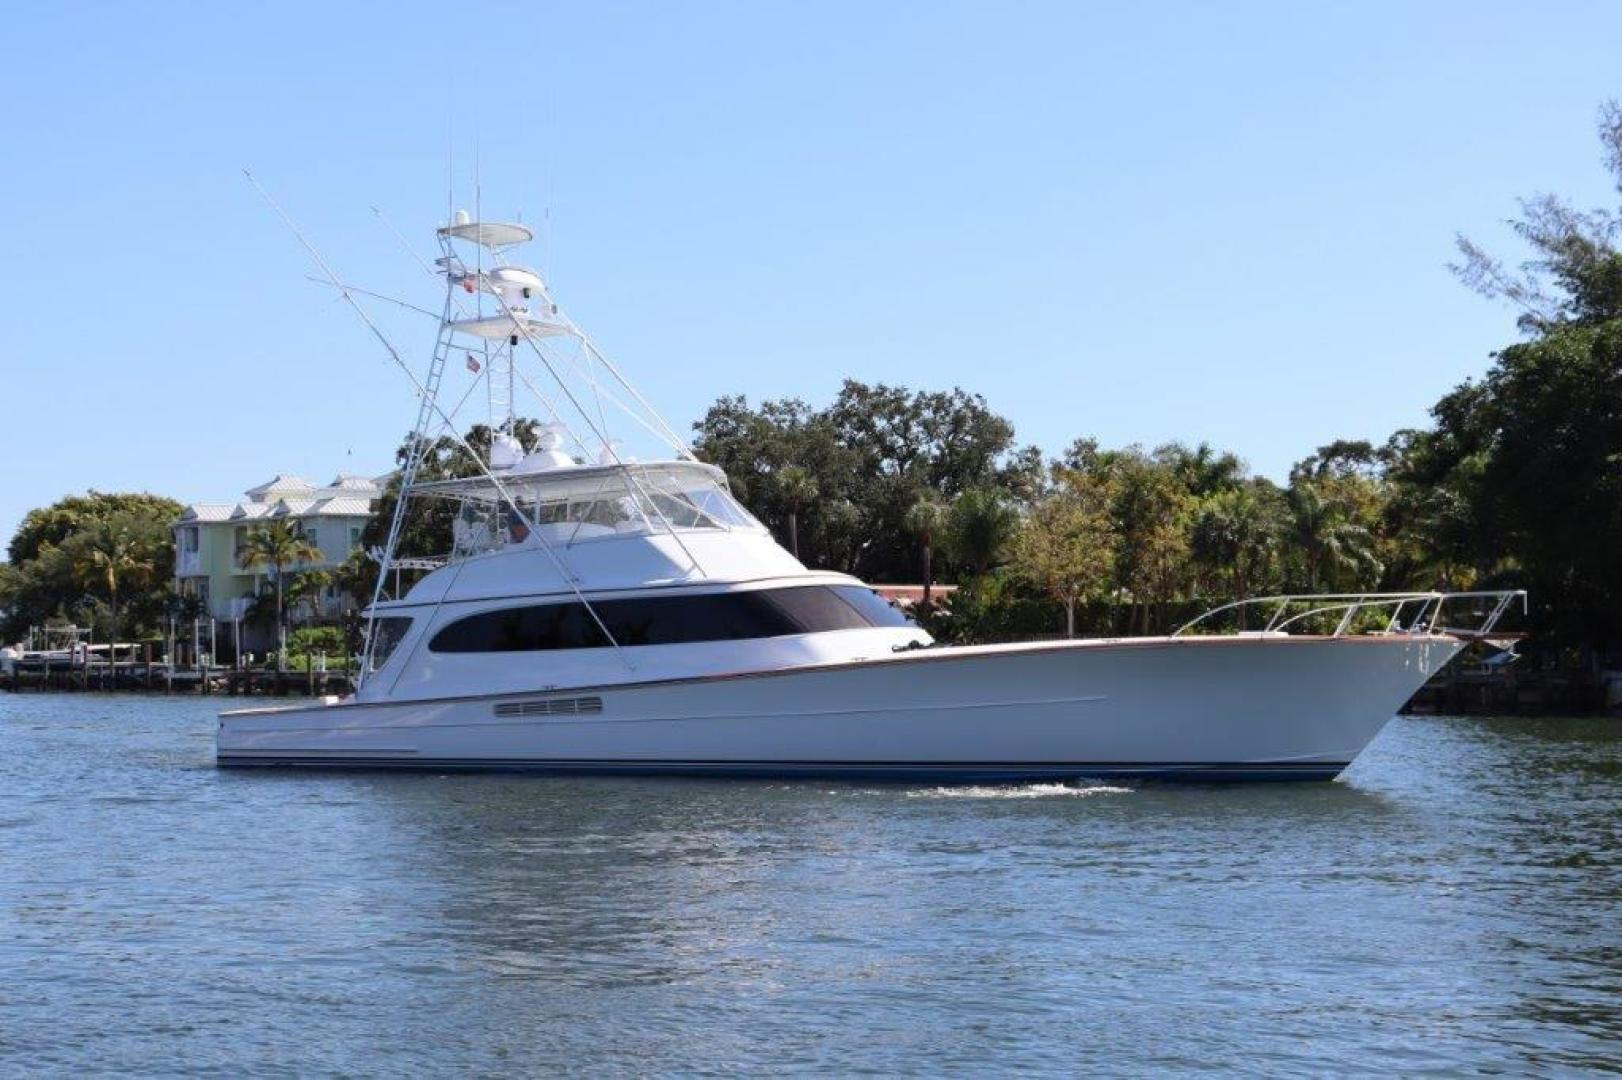 80' Merritt 2005 Sport fisherman Speculator